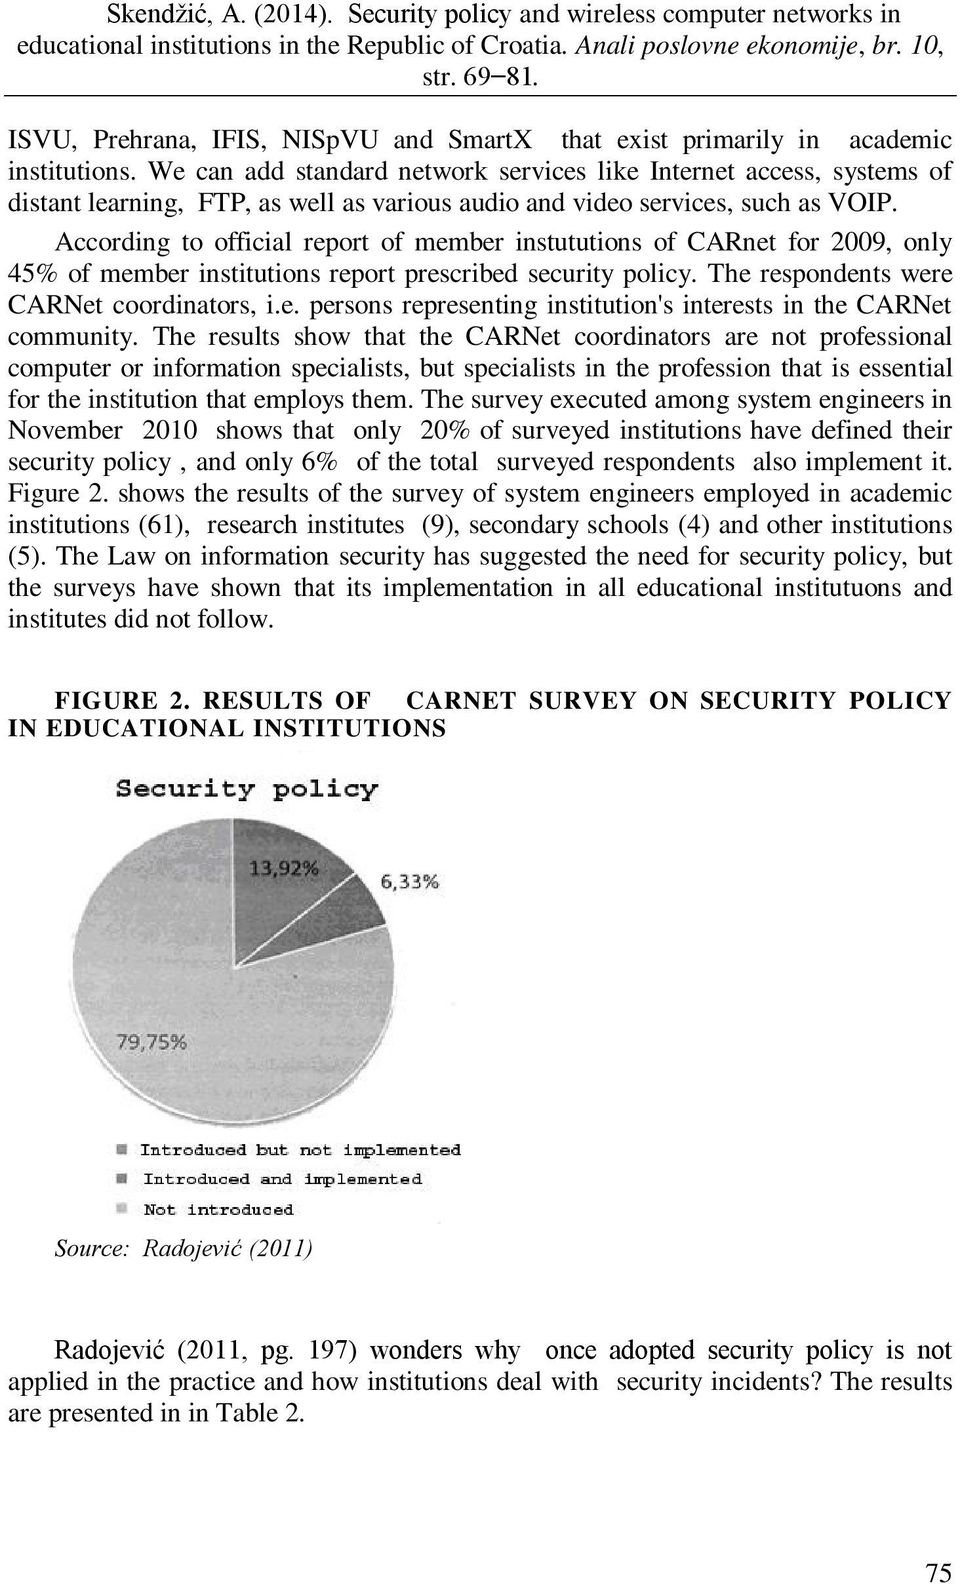 According to official report of member instututions of CARnet for 2009, only 45% of member institutions report prescribed security policy. The respondents were CARNet coordinators, i.e. persons representing institution's interests in the CARNet community.